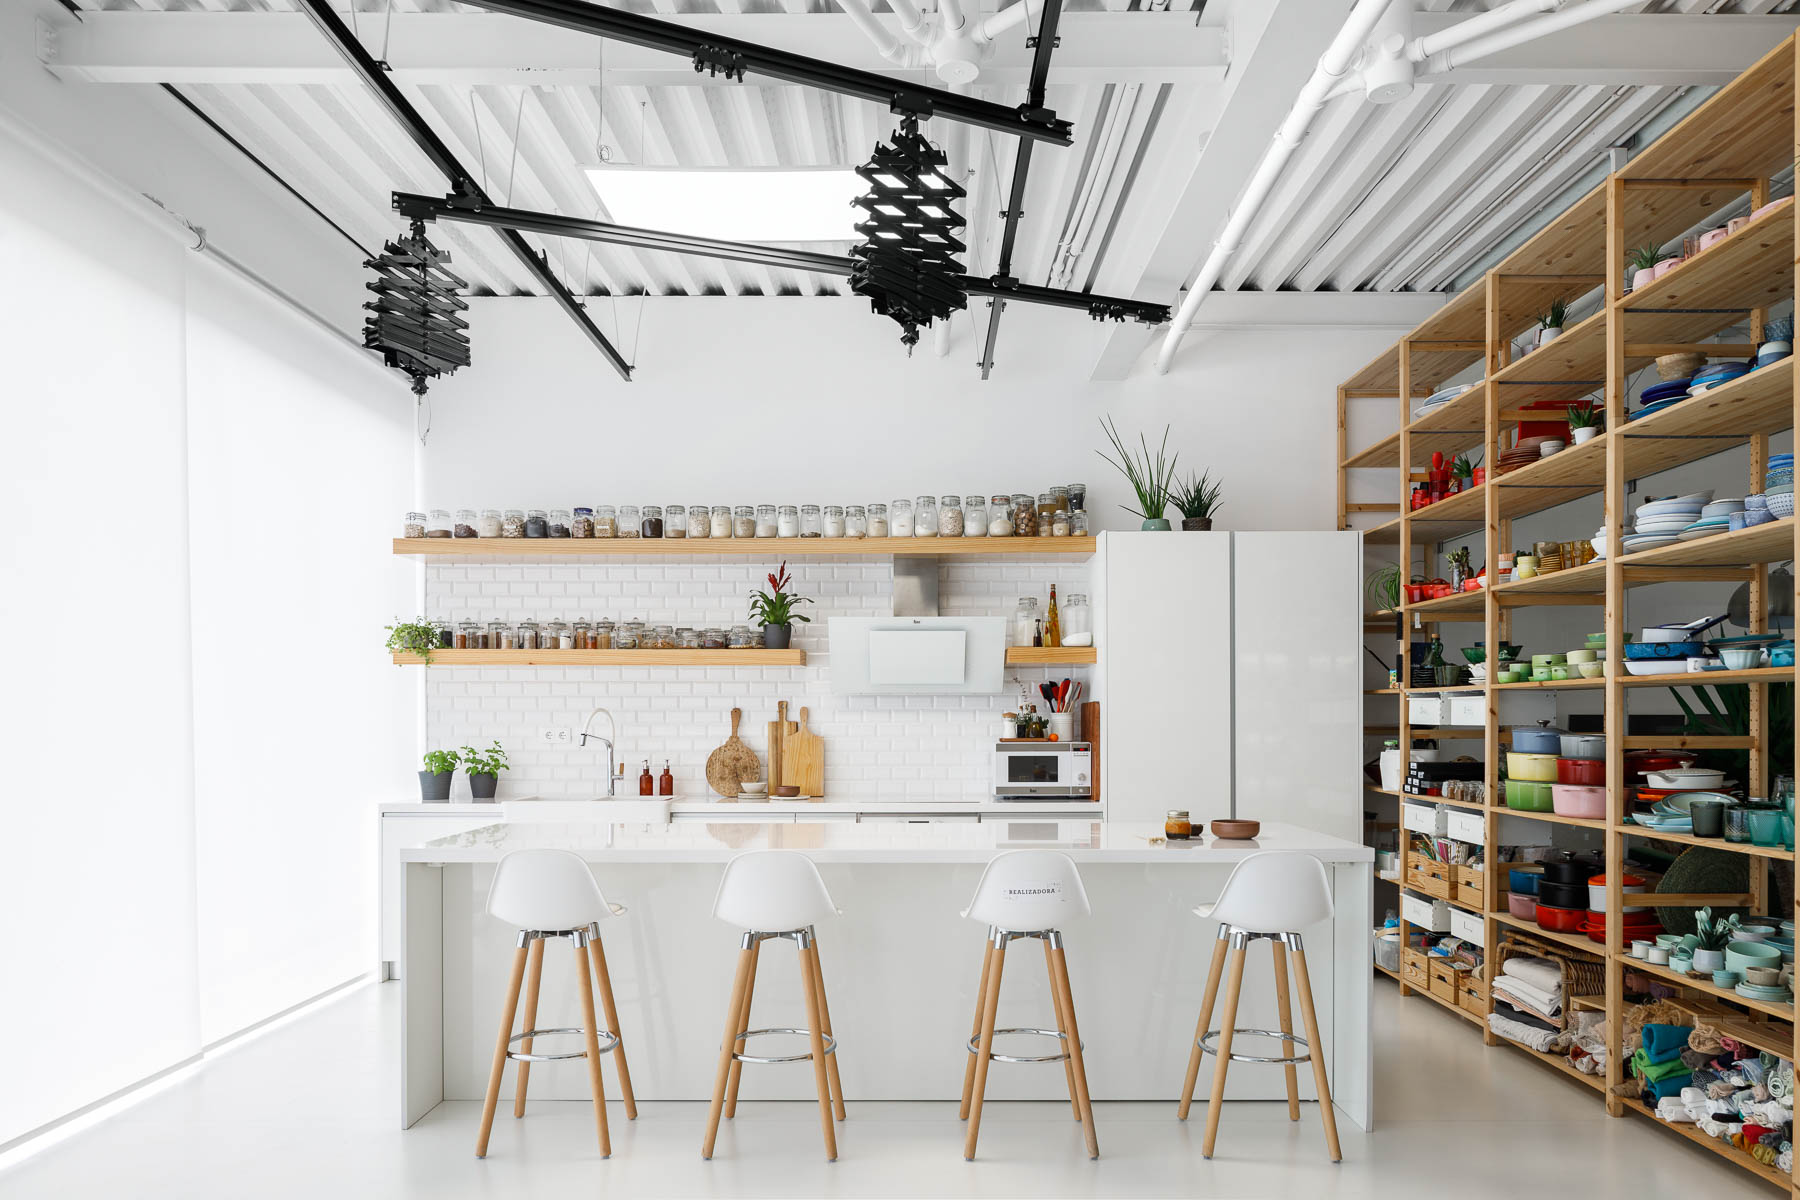 A modern office has a photo studio with a minimalist white kitchen with floating wood shelves. Adjacent to the kitchen are tall wood shelves filled with photography props and kitchen equipment.